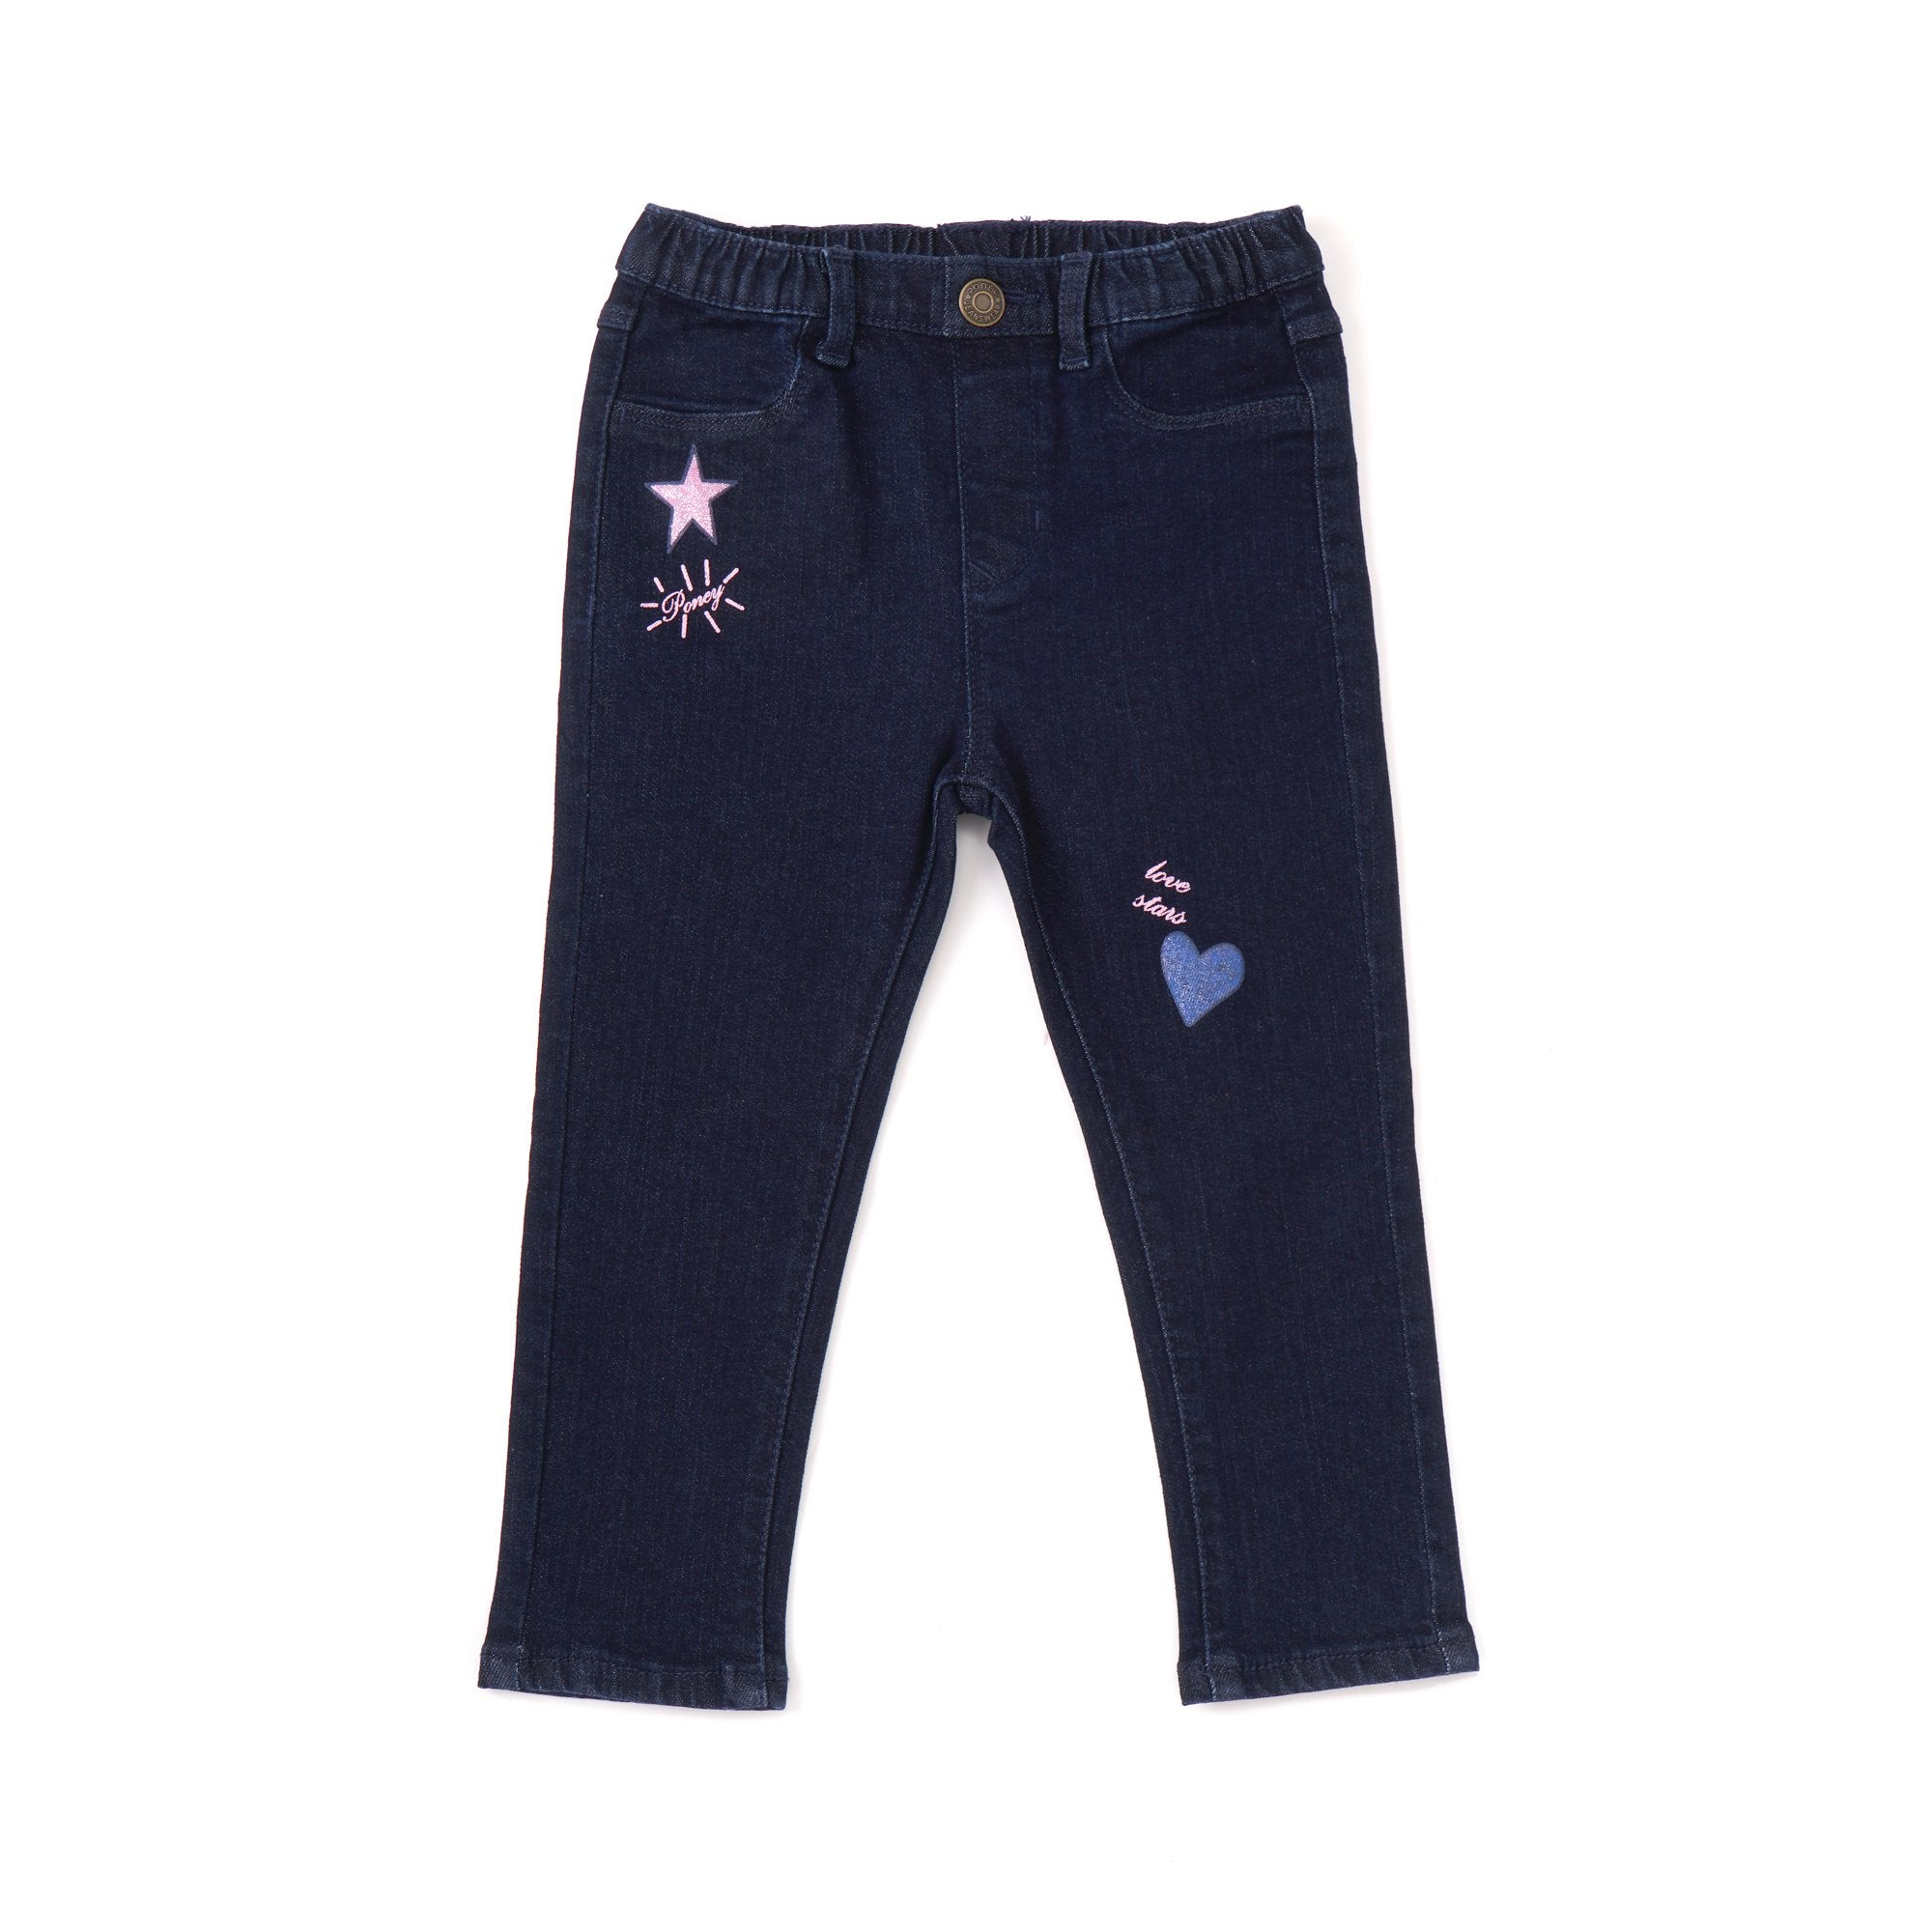 Poney Girls Jeans 7830 (6mths-12yrs)